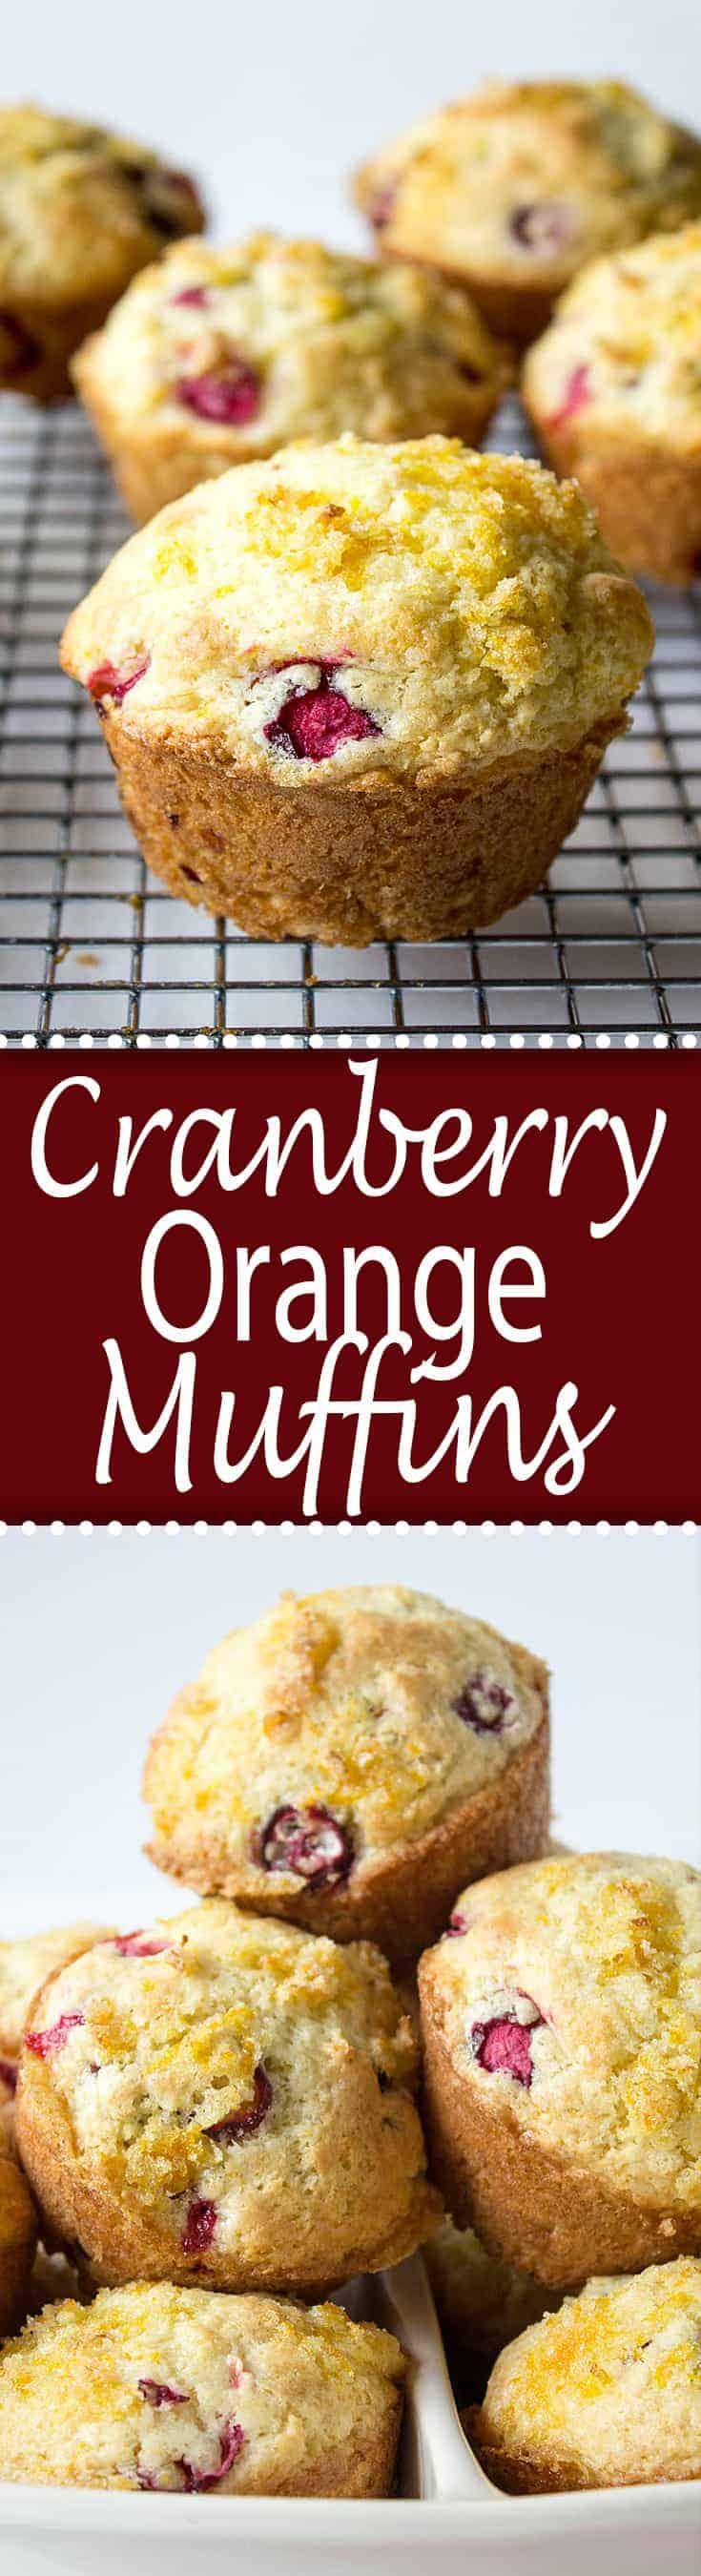 Cranberry Orange Muffins are bursting with cranberries and have an orange sugar topping!